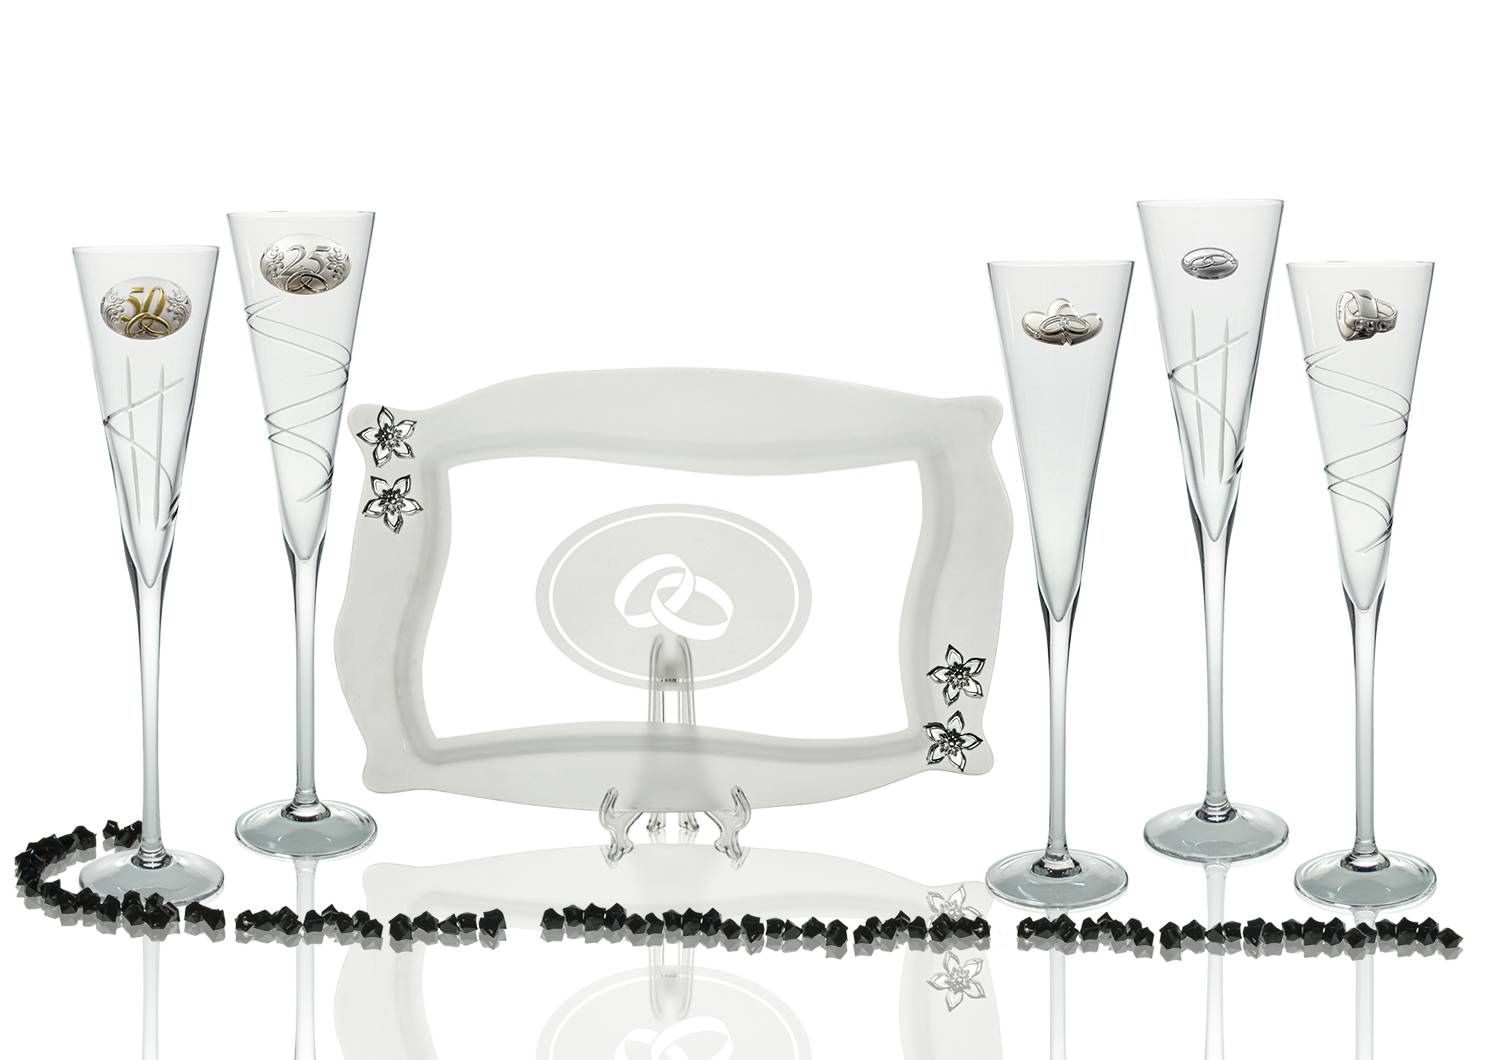 Radu champagne flutes and Patisserie tray for wedding/anniversary gift